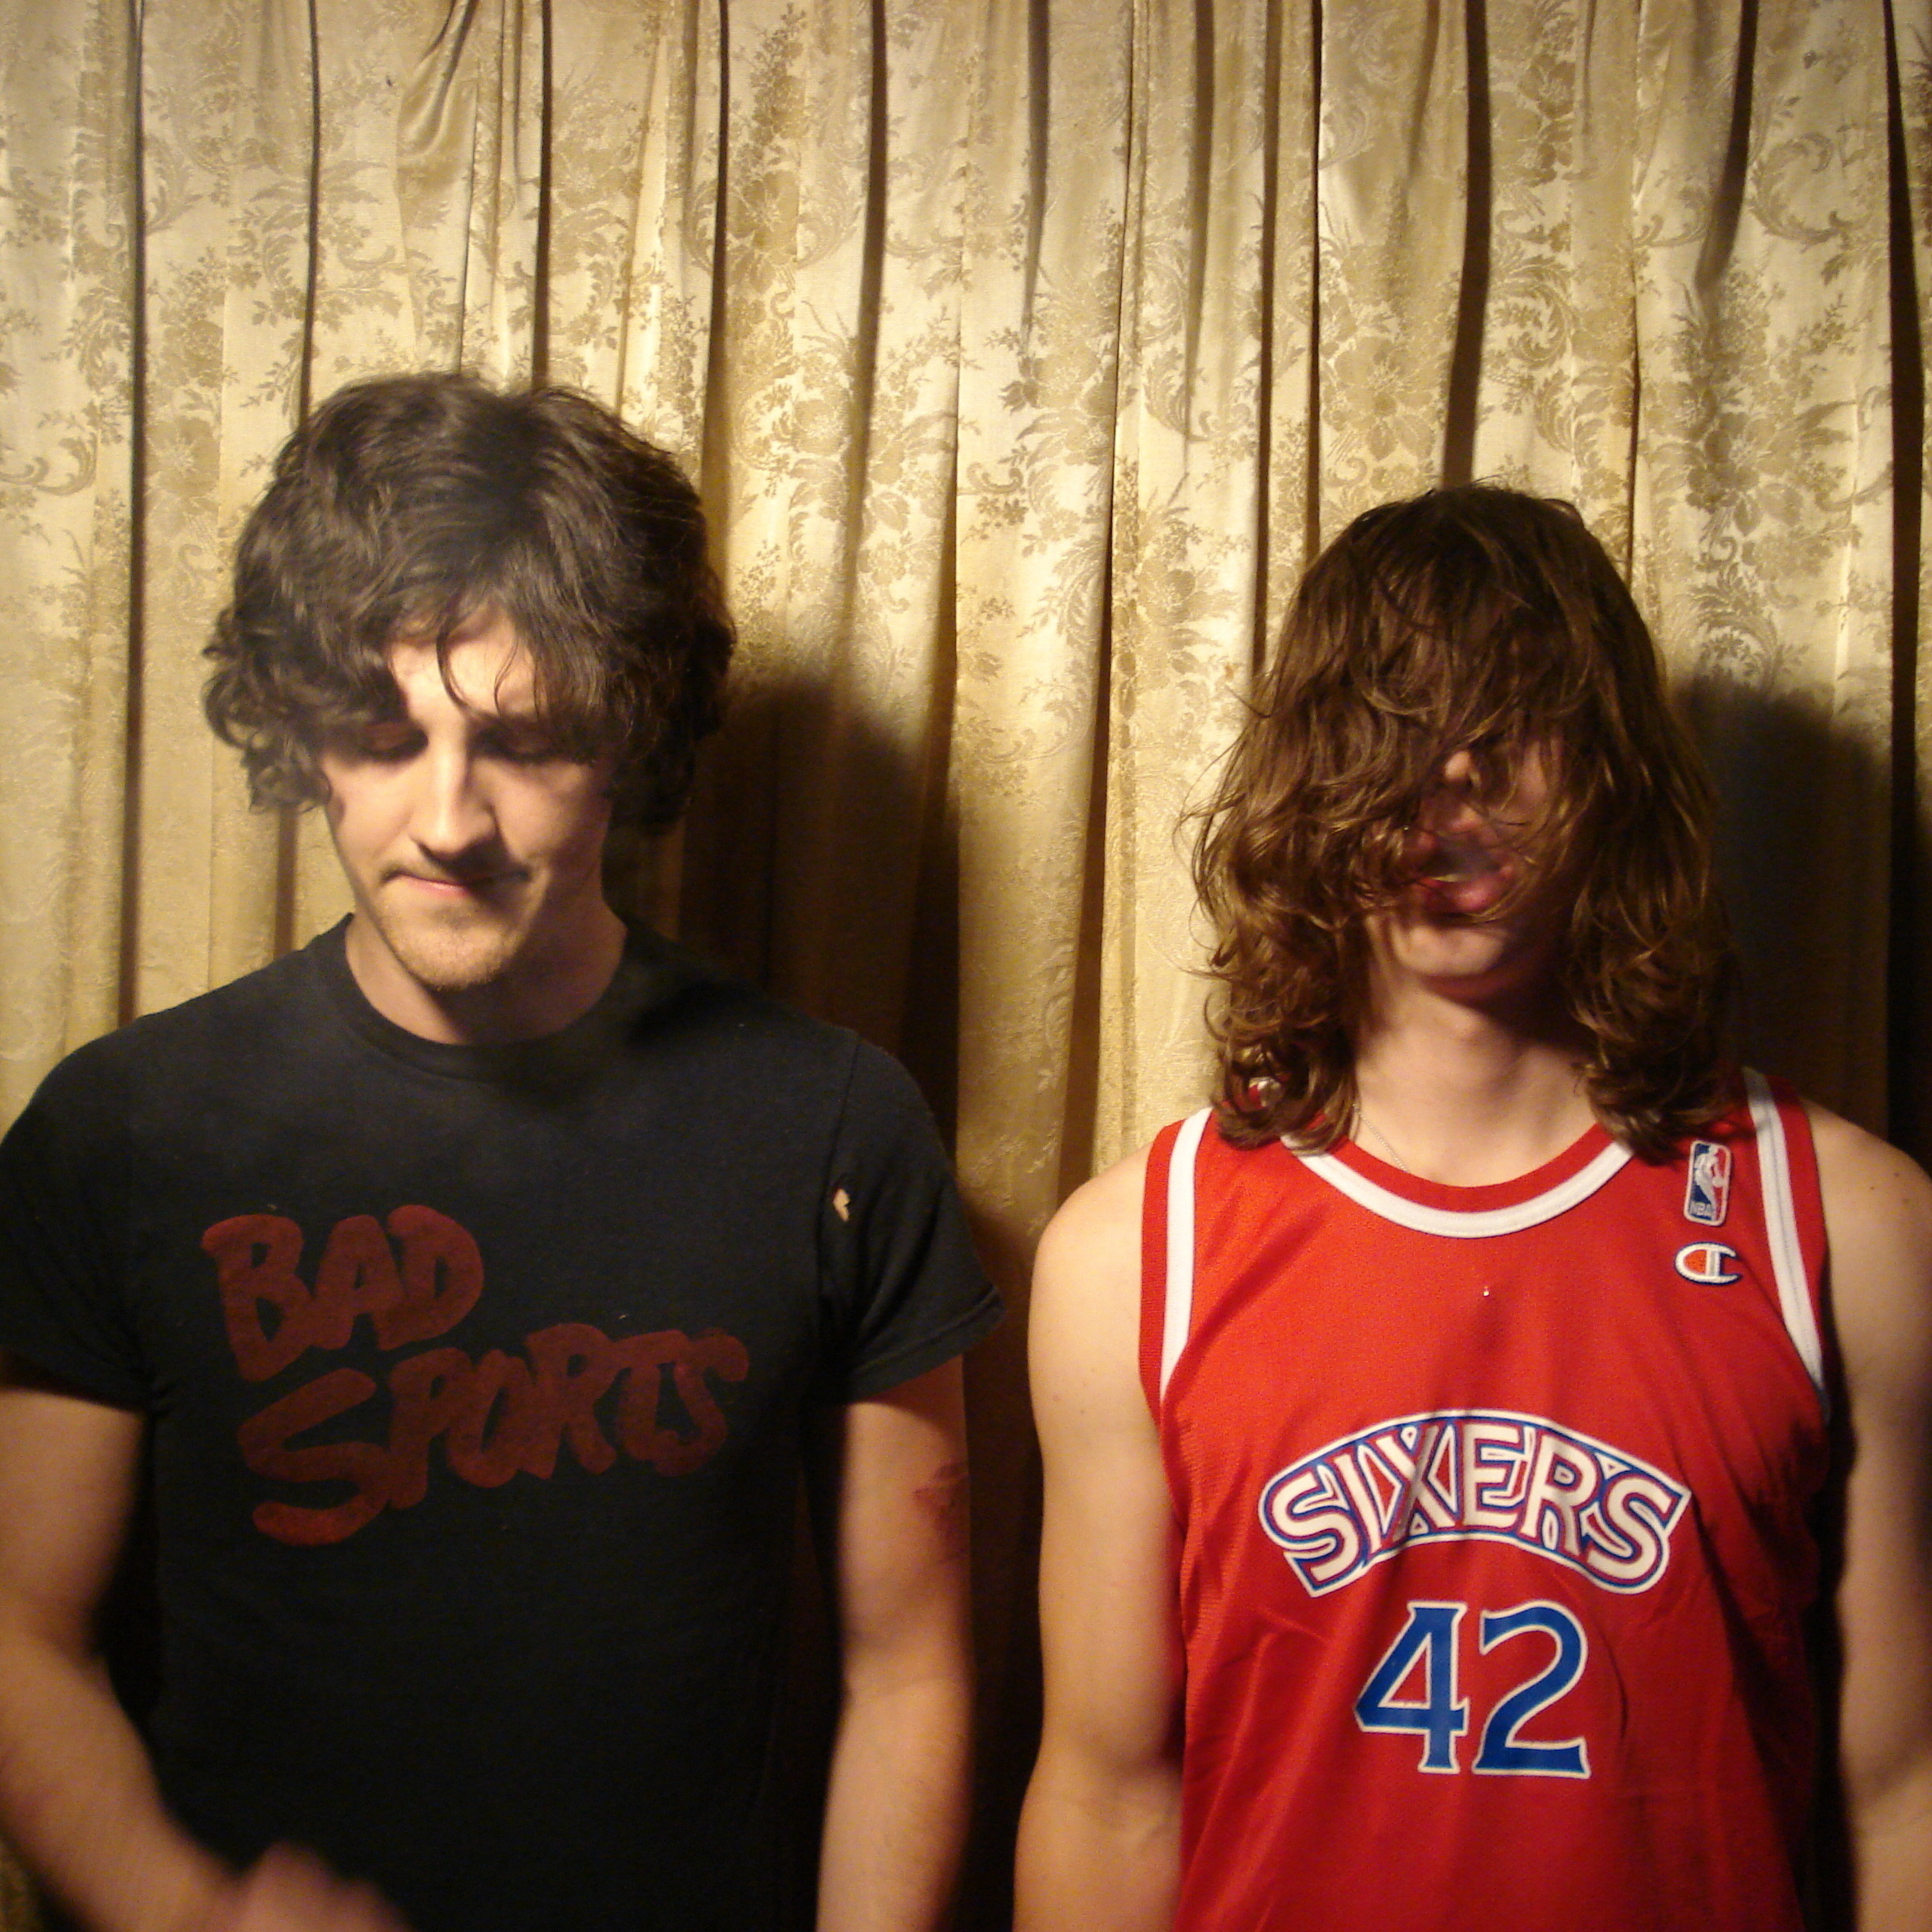 The members of the band Bass Drum of Death, drummer Colin Sneed (left) and singer-guitarist John Barrett, live in their hometown of Oxford, Miss. --�� a city of around 19,000 people.